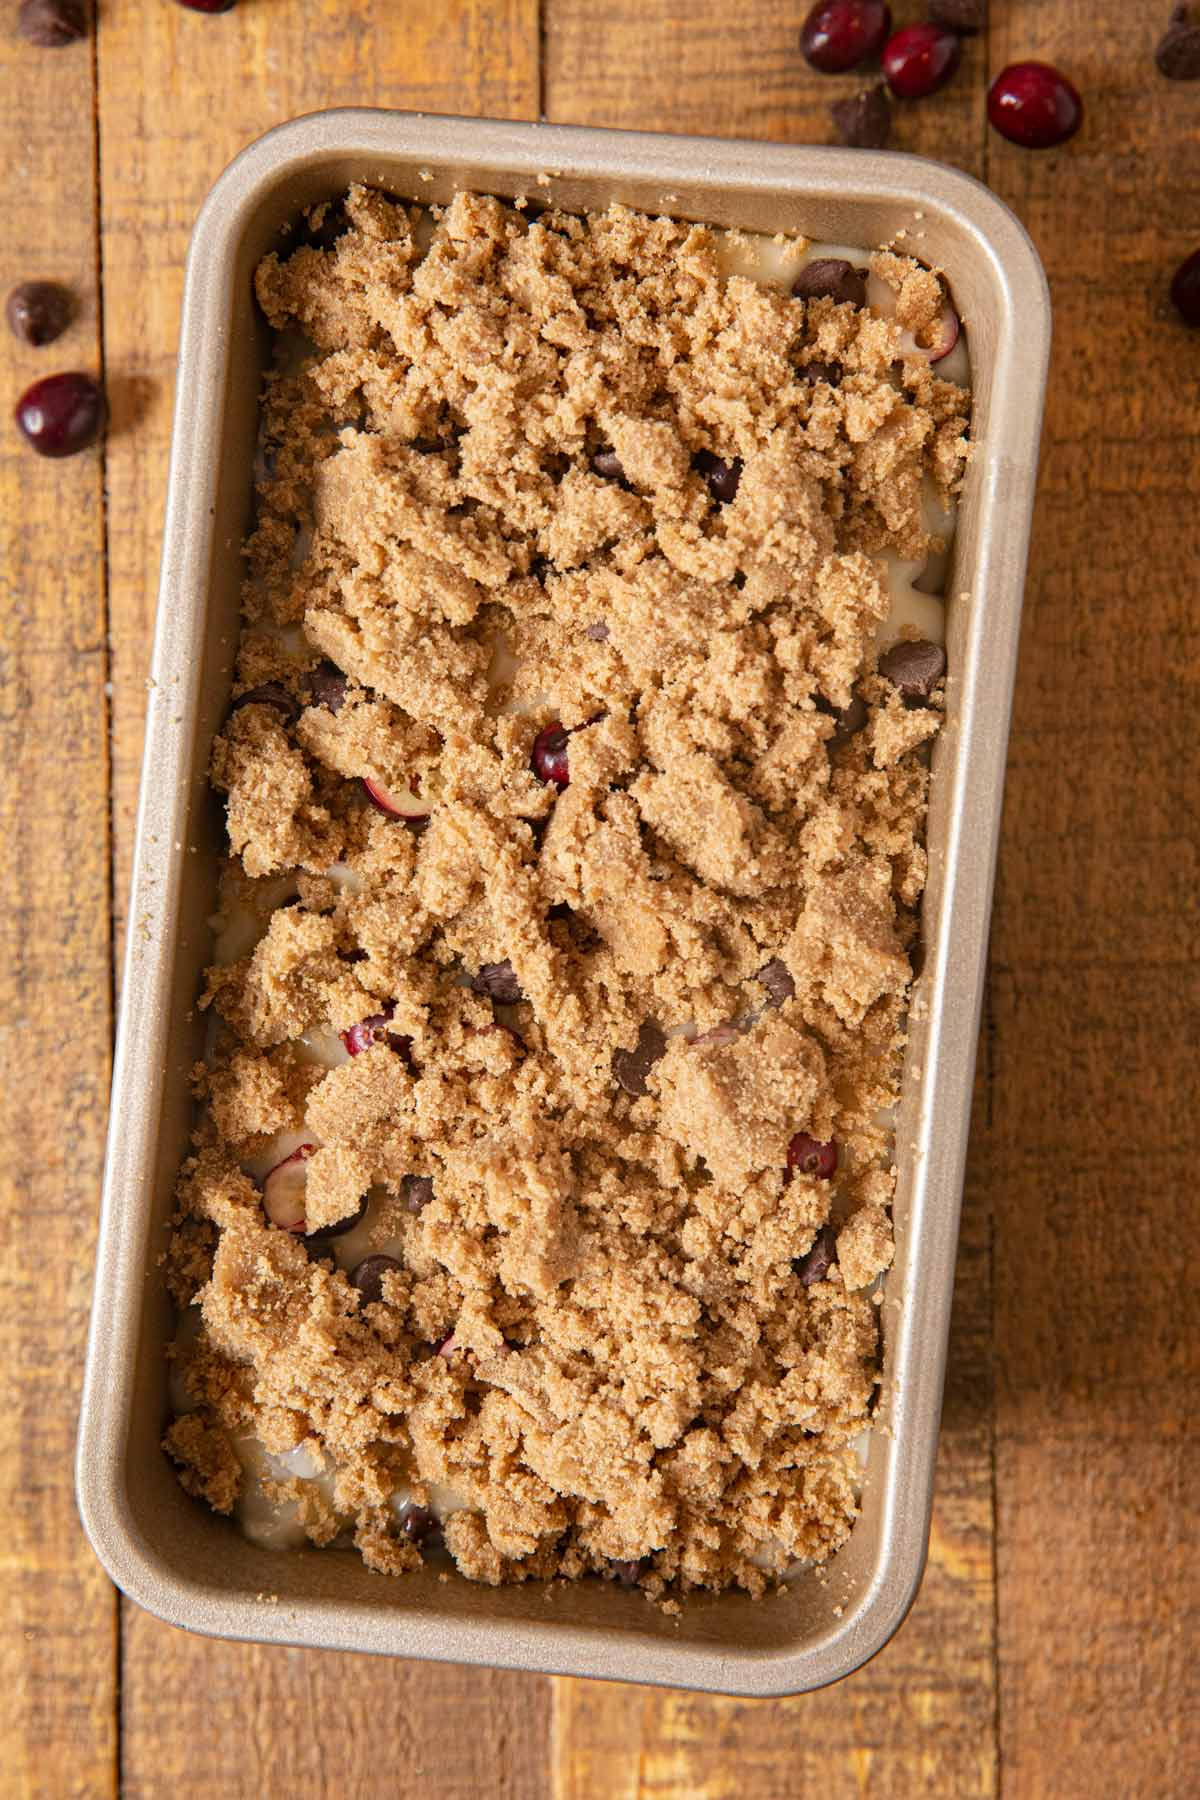 Cranberry Chocolate Chip Bread dough in loaf pan